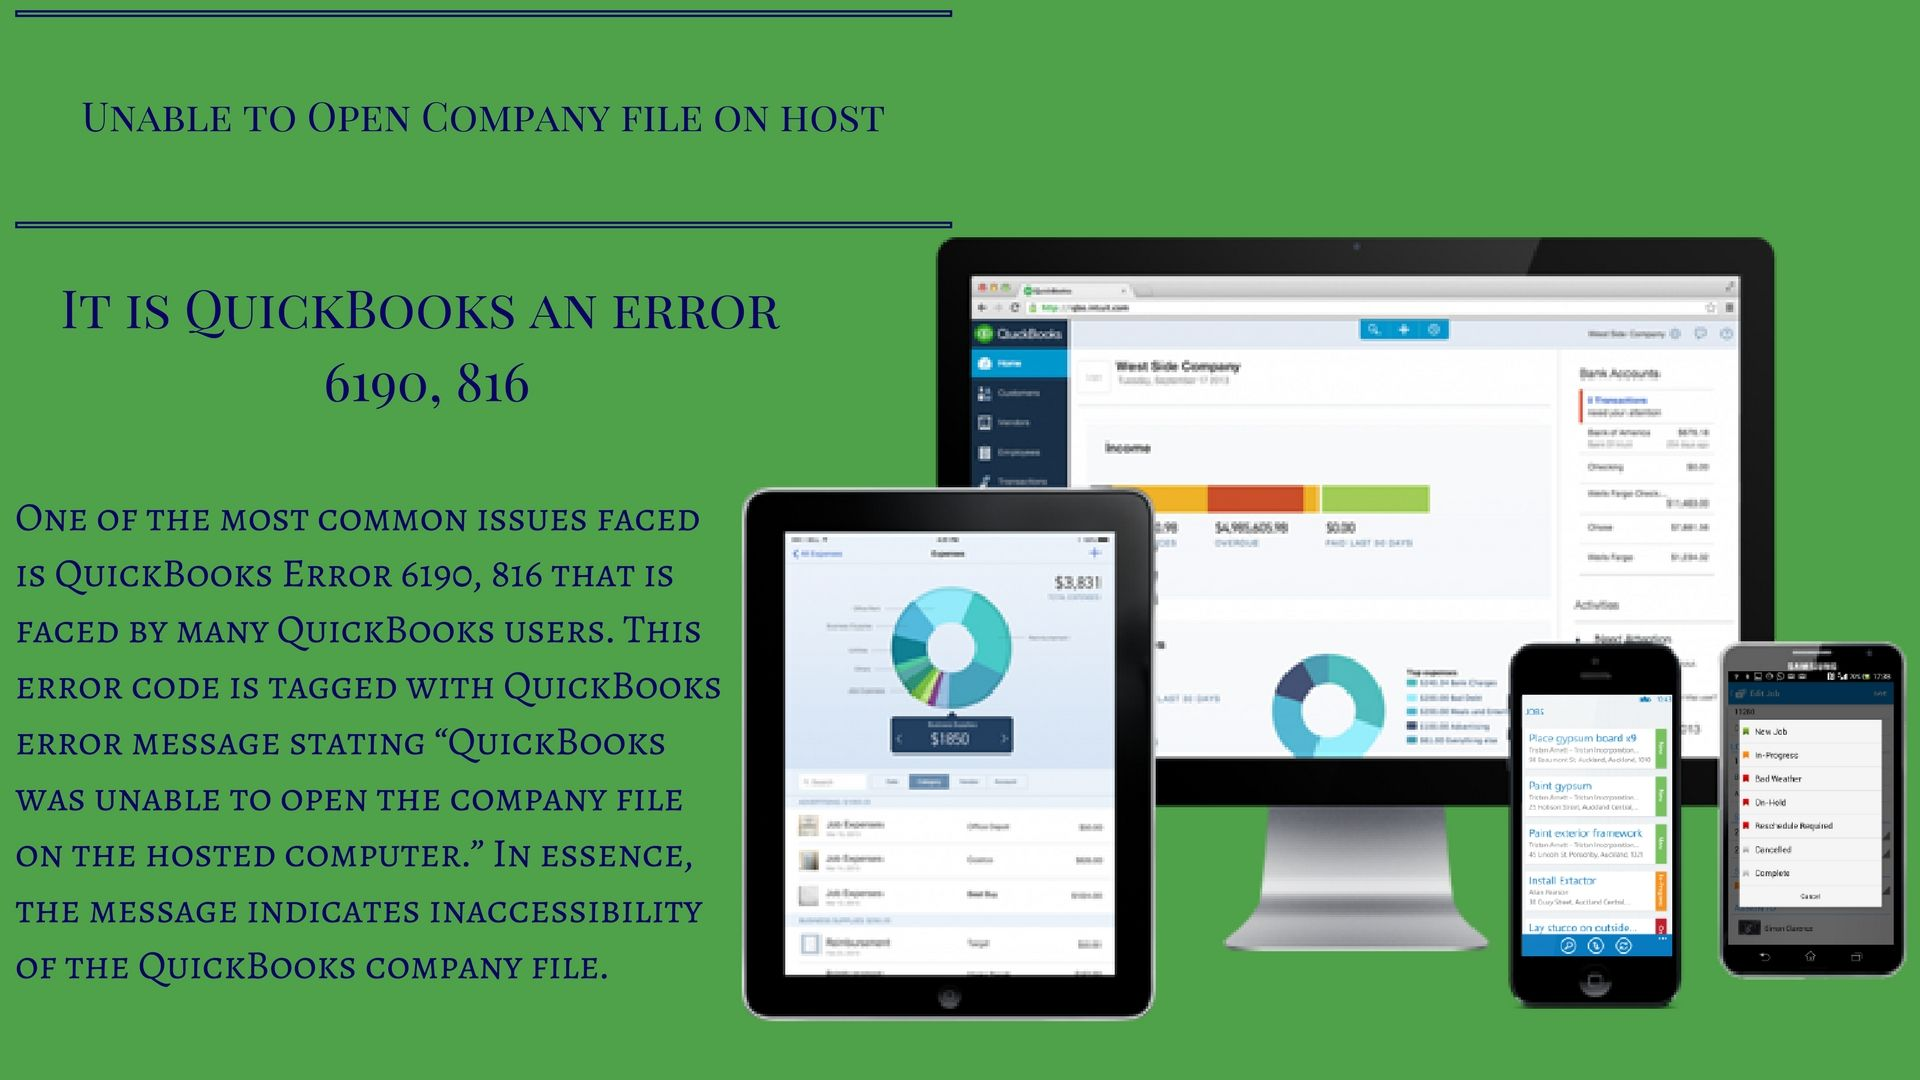 During QuickBooks error 6190, 816, a user will unable to